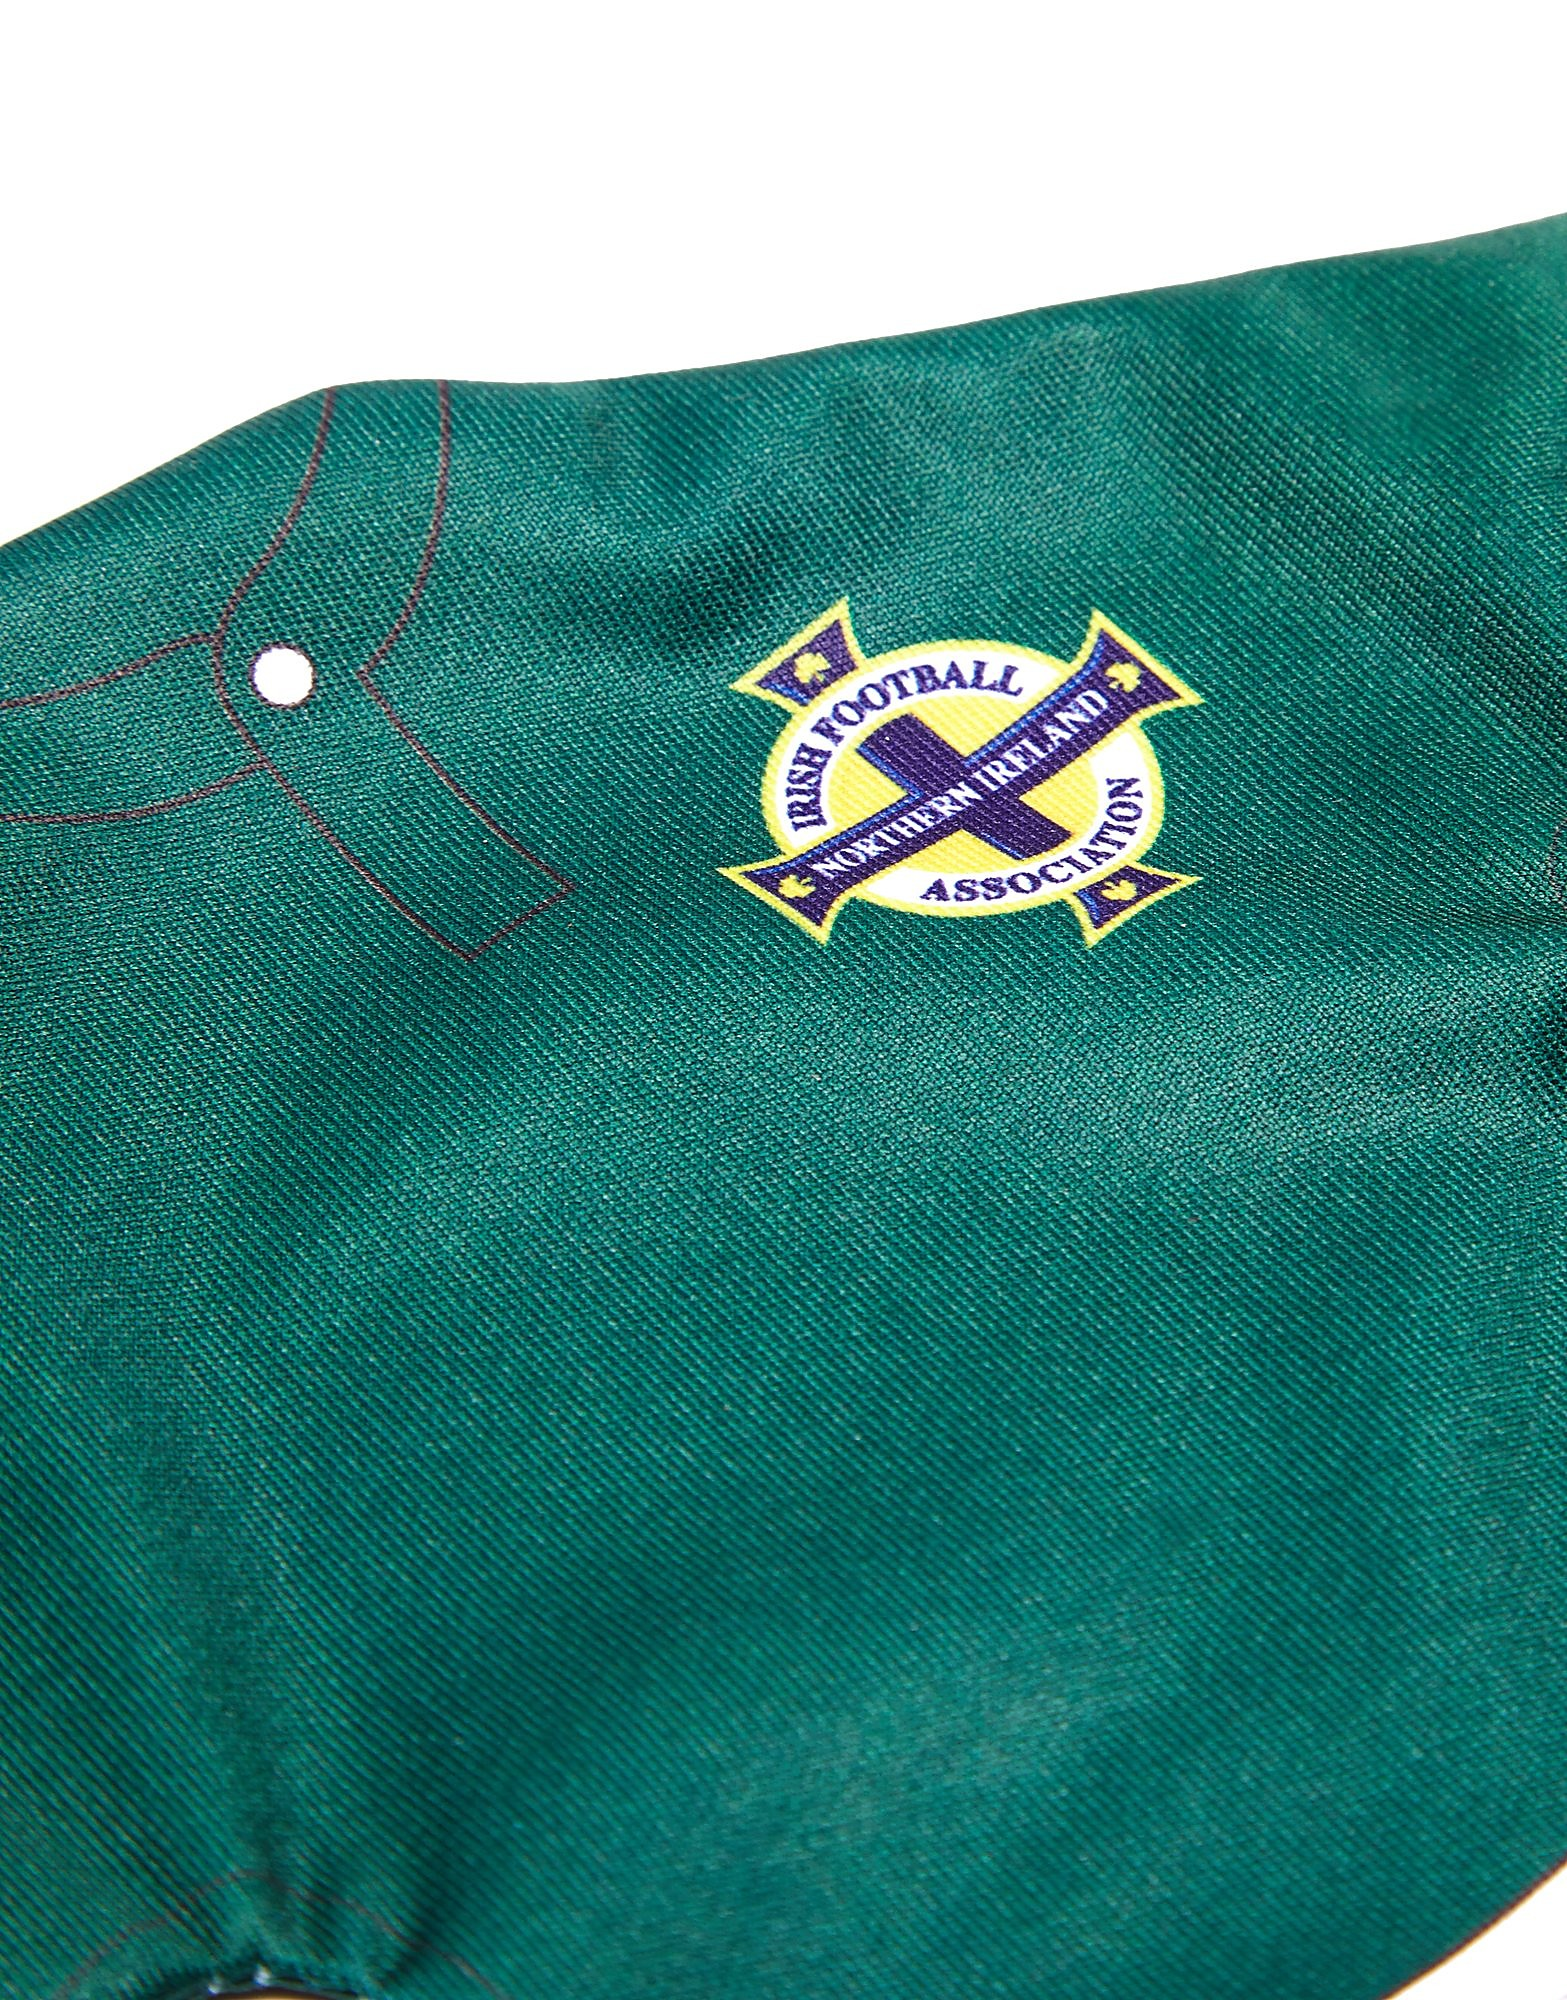 Official Team Northern Ireland Home Kit Coat Hanger